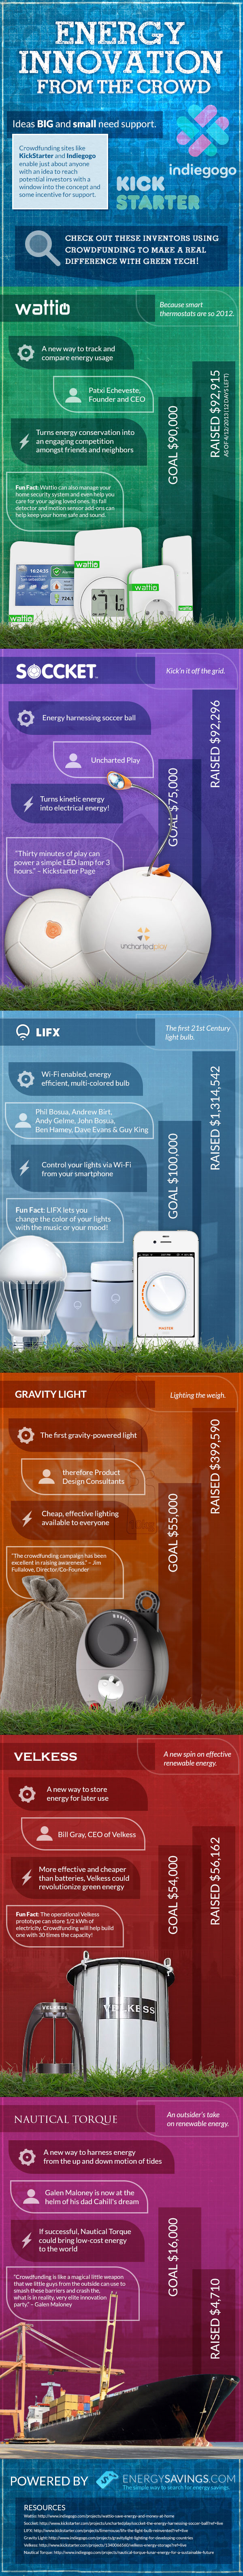 infographic_energy_innovation